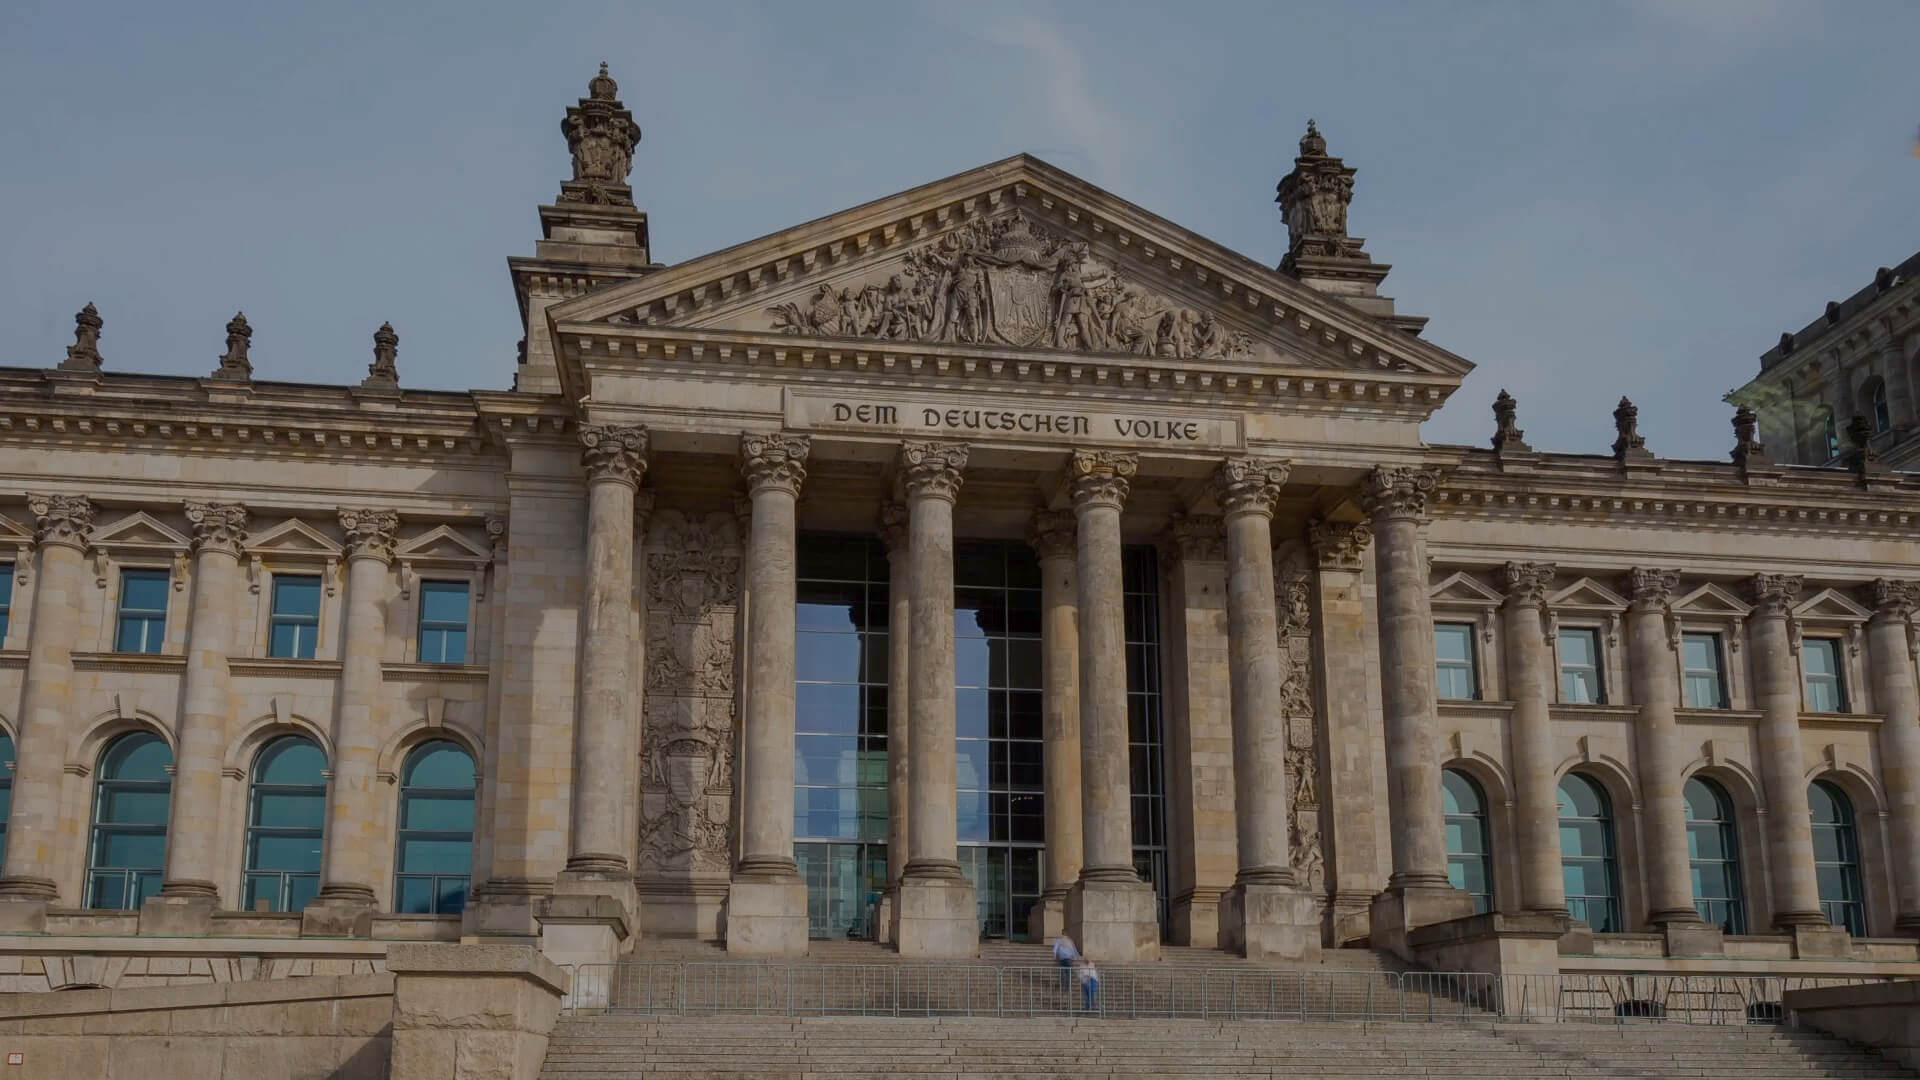 This image shows the German Reichstag building. It illustrates the homepage of the website of the Progressive Governance Digital Symposium 2020.